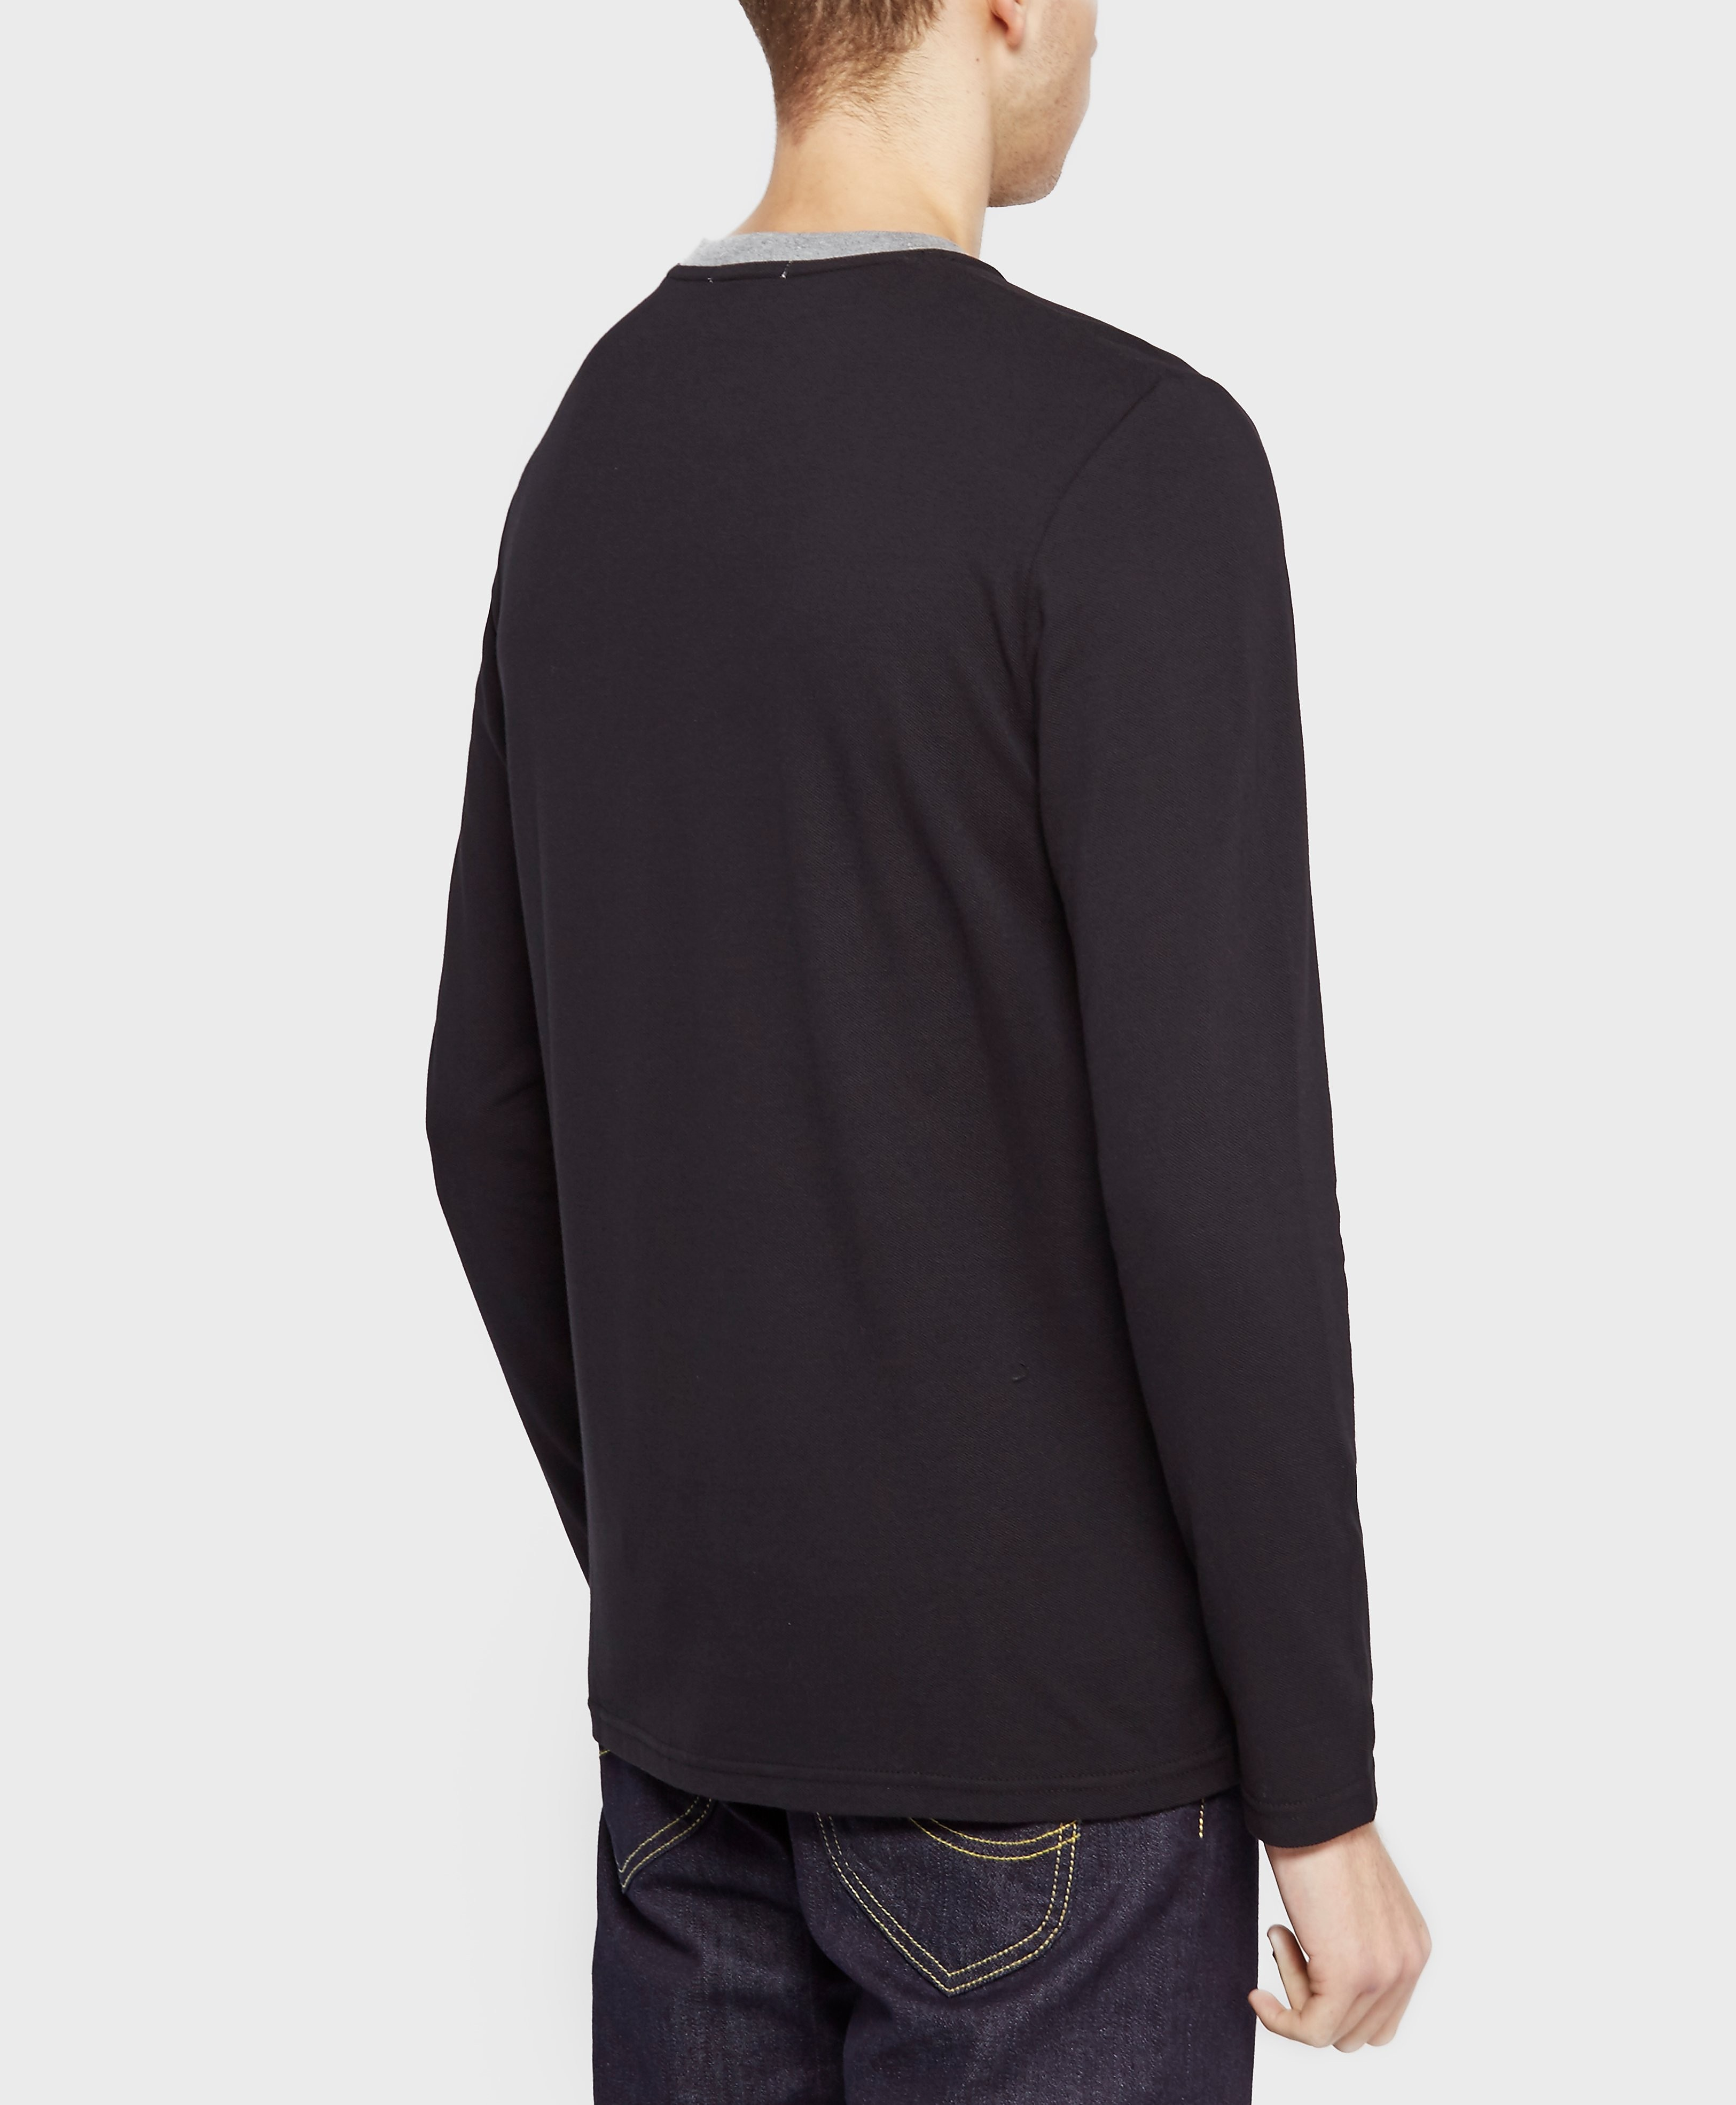 Fred Perry Long Sleeve T-Shirt - Exclusive